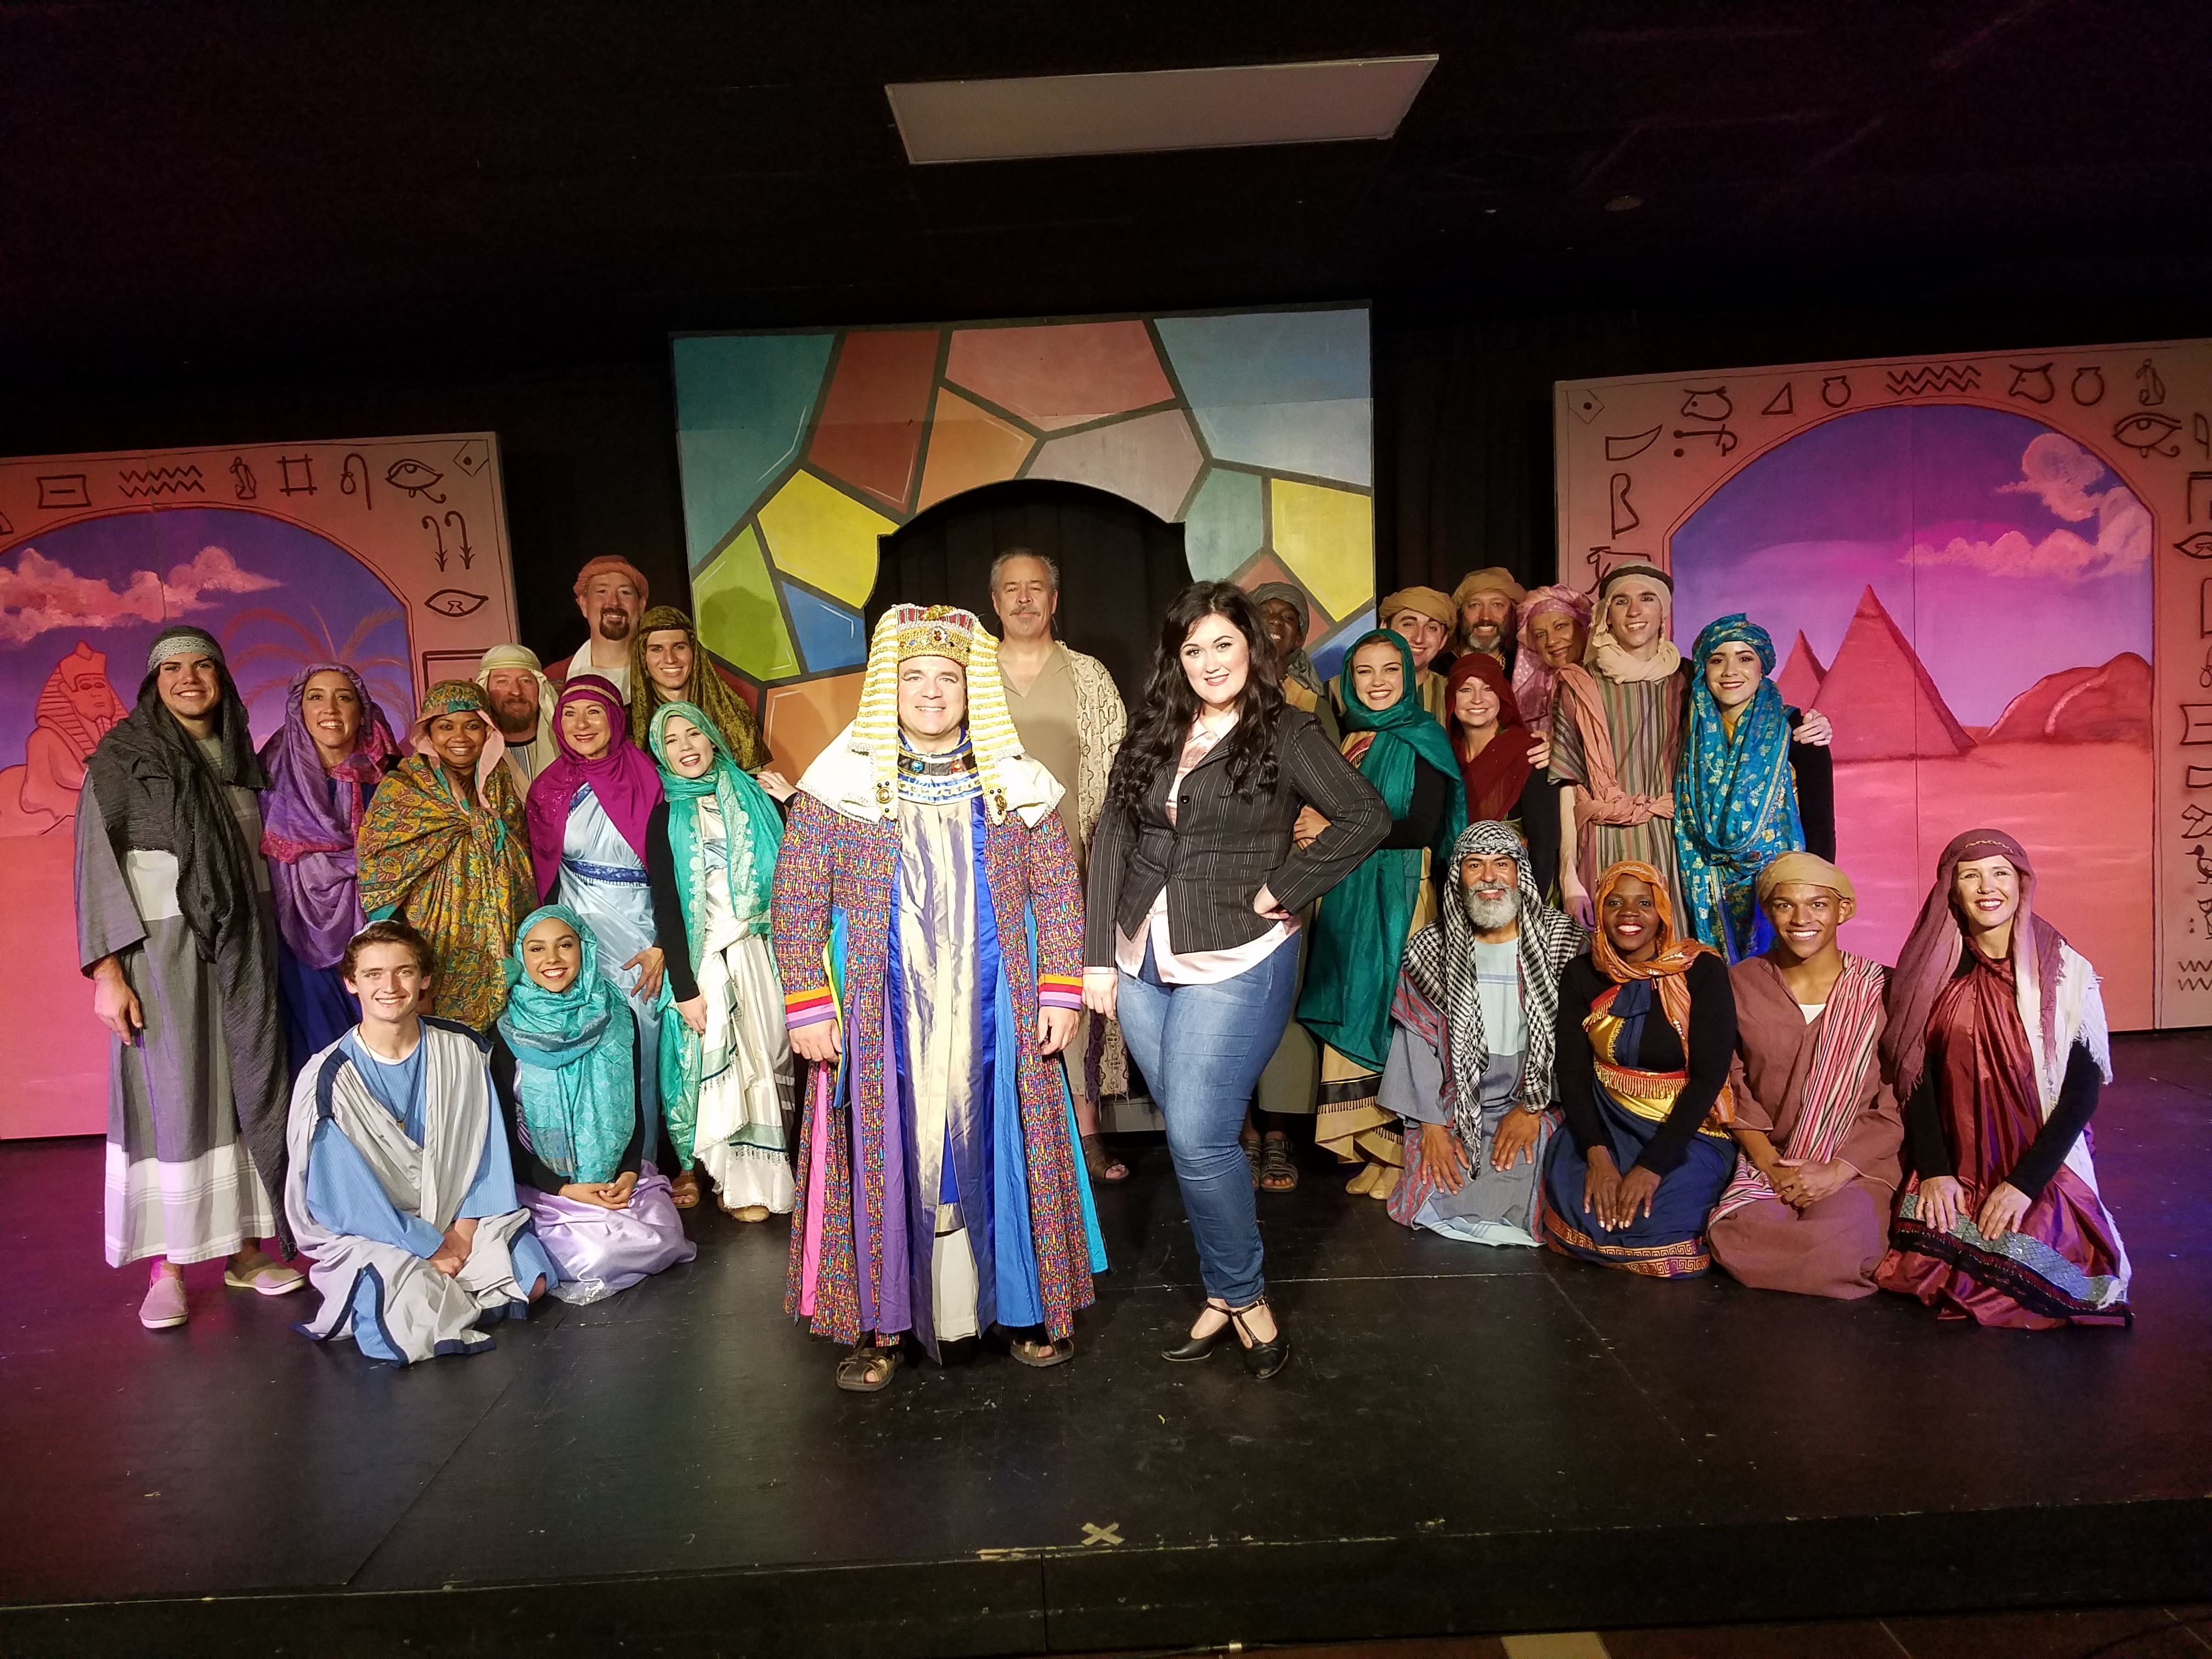 BWW Review: Heavenly Performance of JOSEPH AND THE TECHNICOLOR DREAMCOAT  at Dreamhouse Theatre